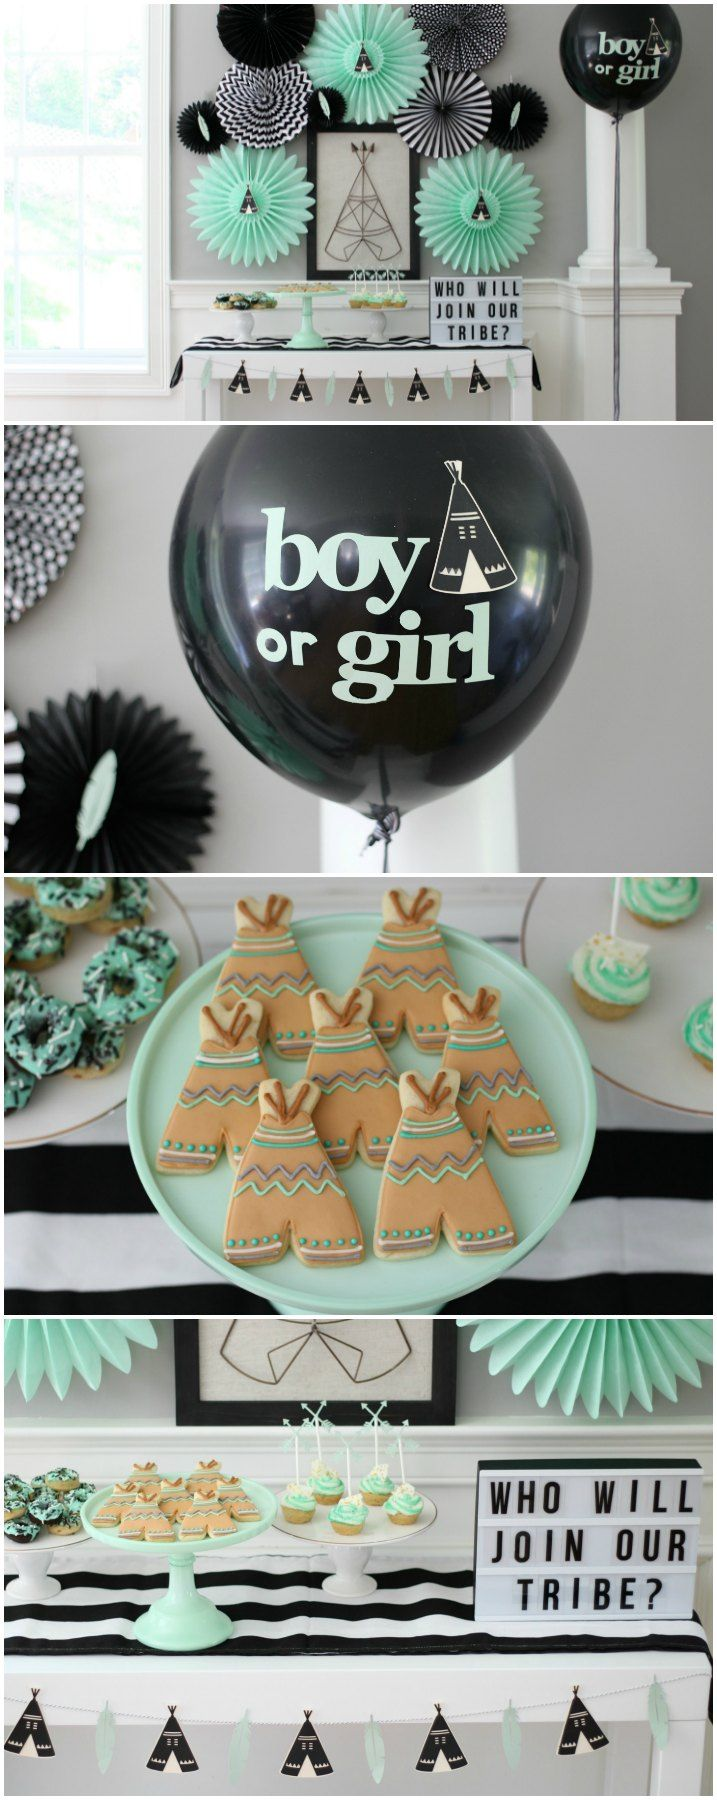 Who Will Join Our Tribe Gender Reveal Party Ideas